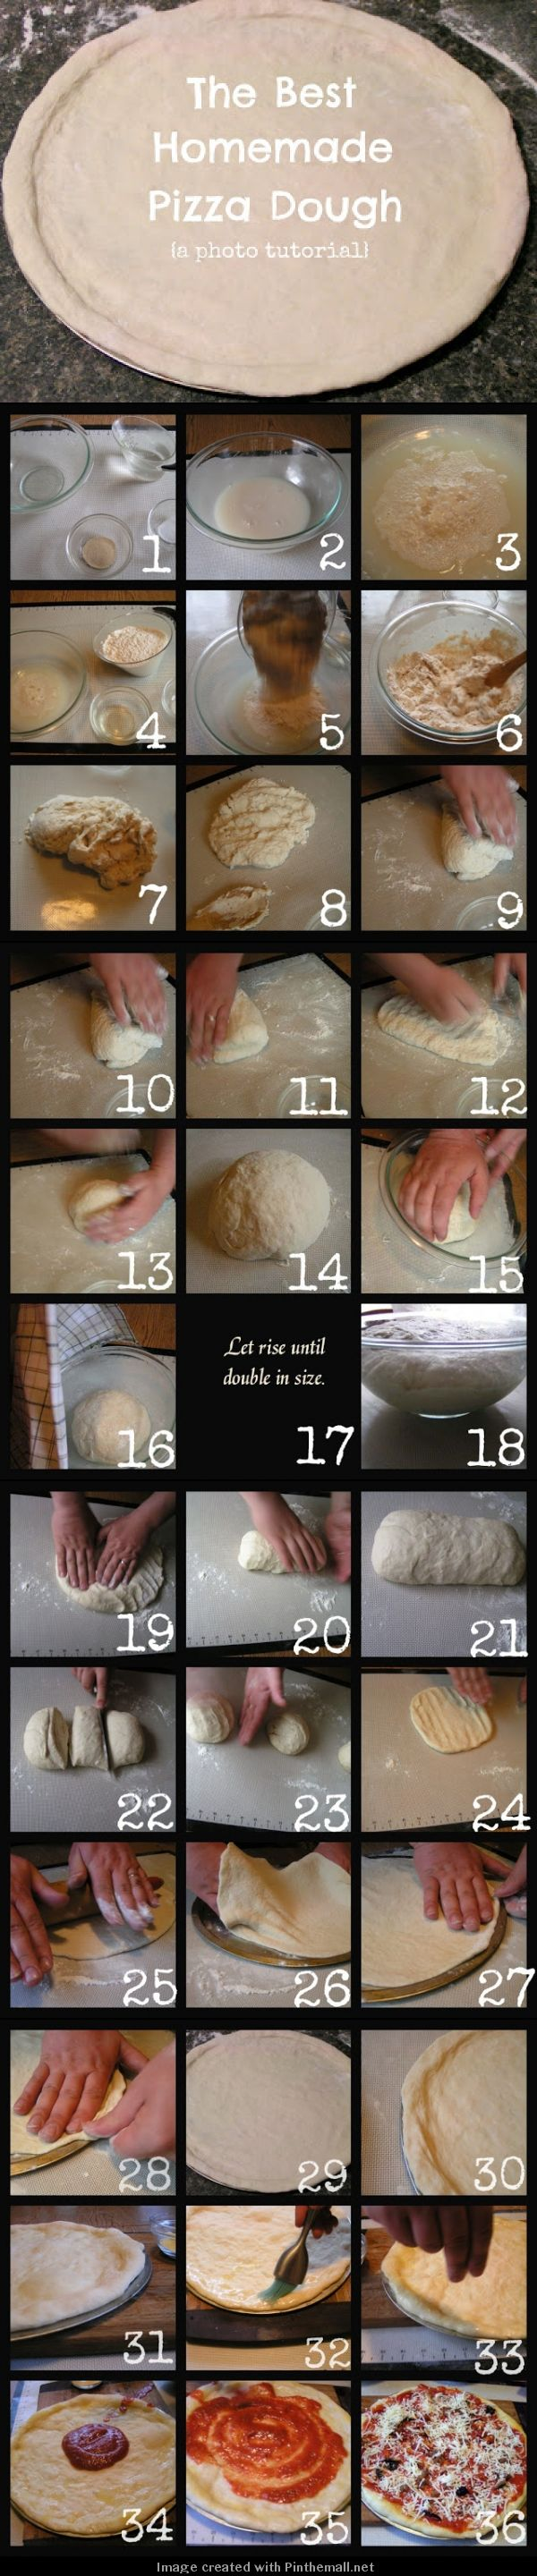 The Best Homemade Pizza Dough Tutorial